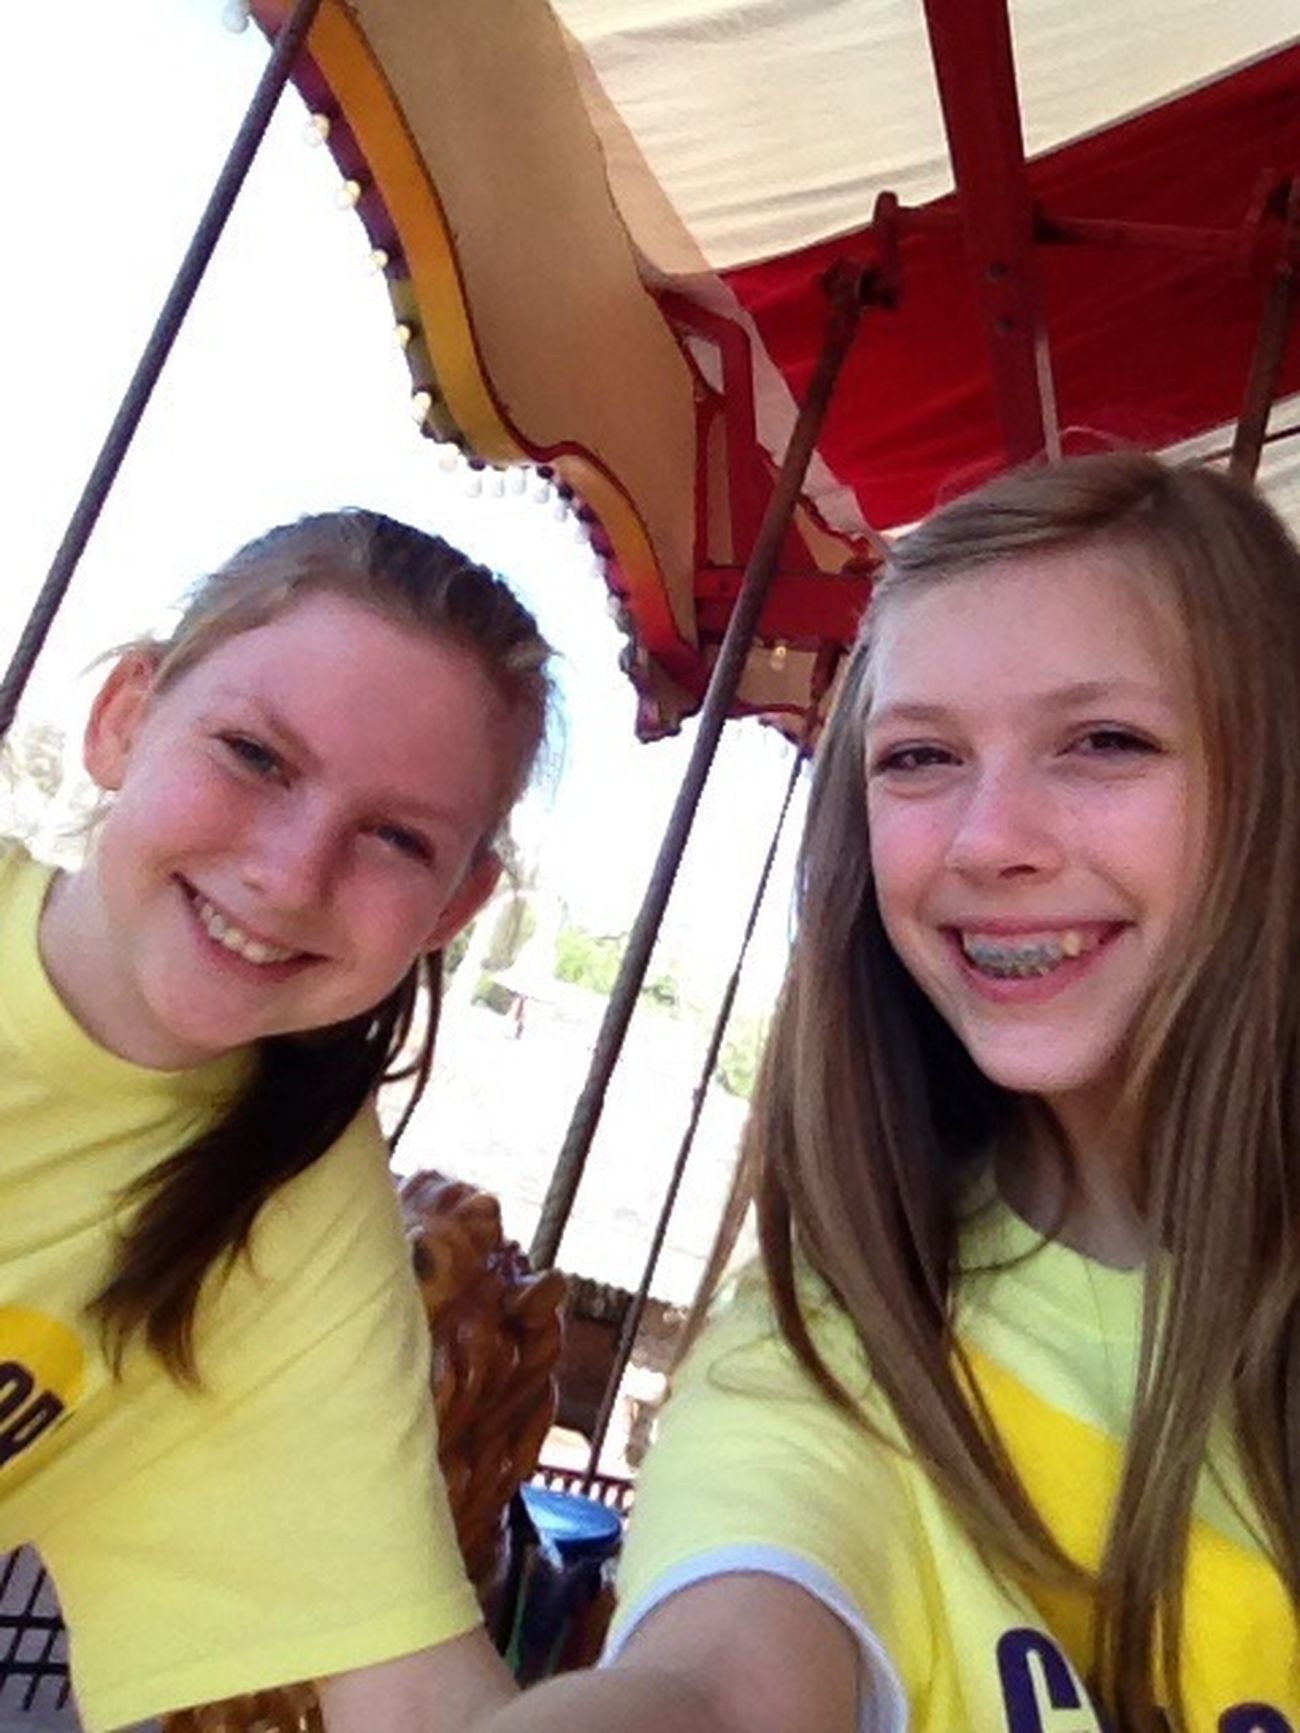 On The Carousel